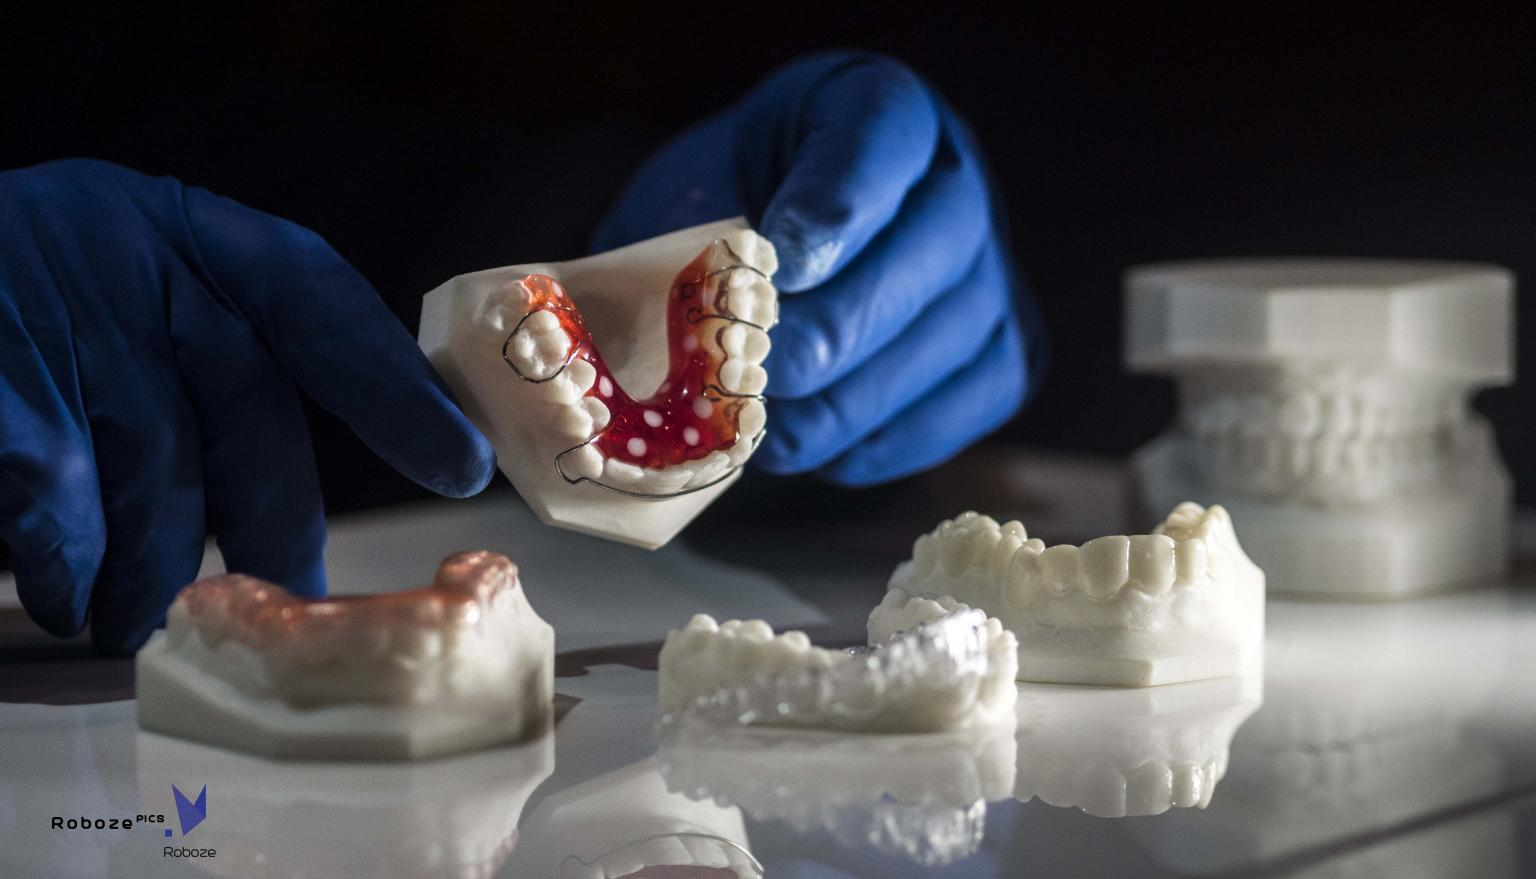 New orthodontic pieces can be used straight from the printer